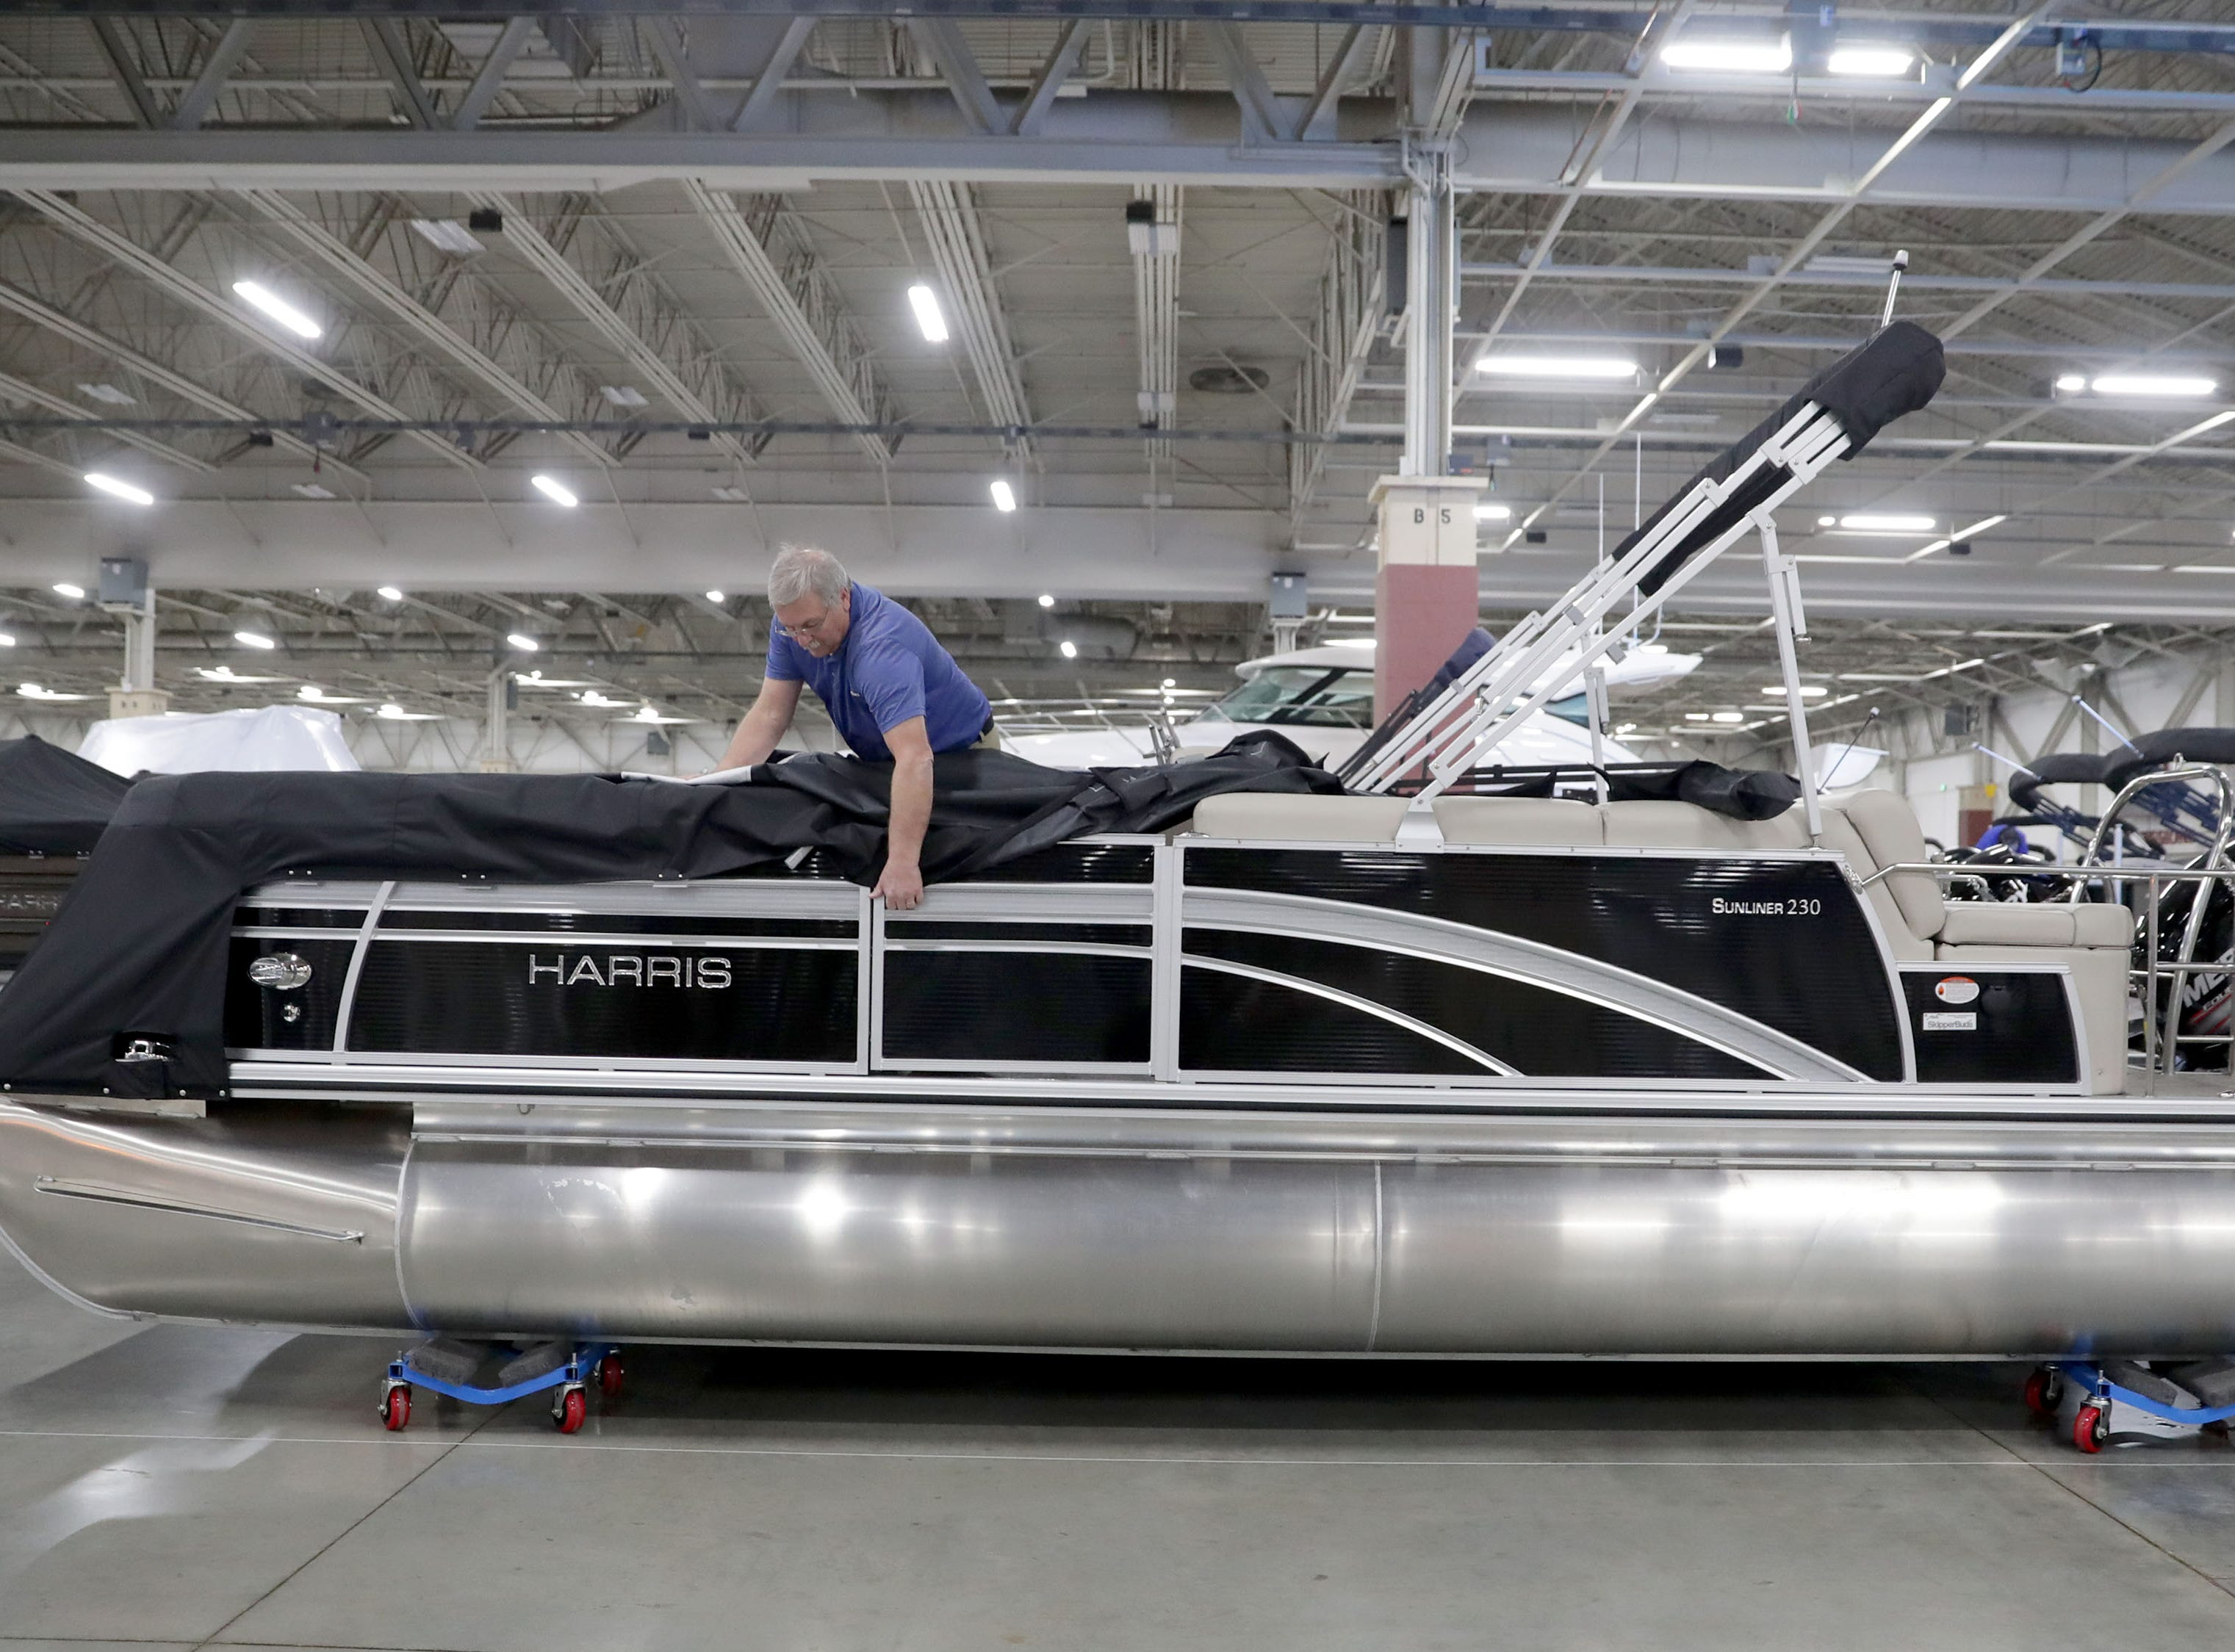 Gary Krivos, with Skipper Buds of Pewaukee, sets up a  Harris pontoon boat.